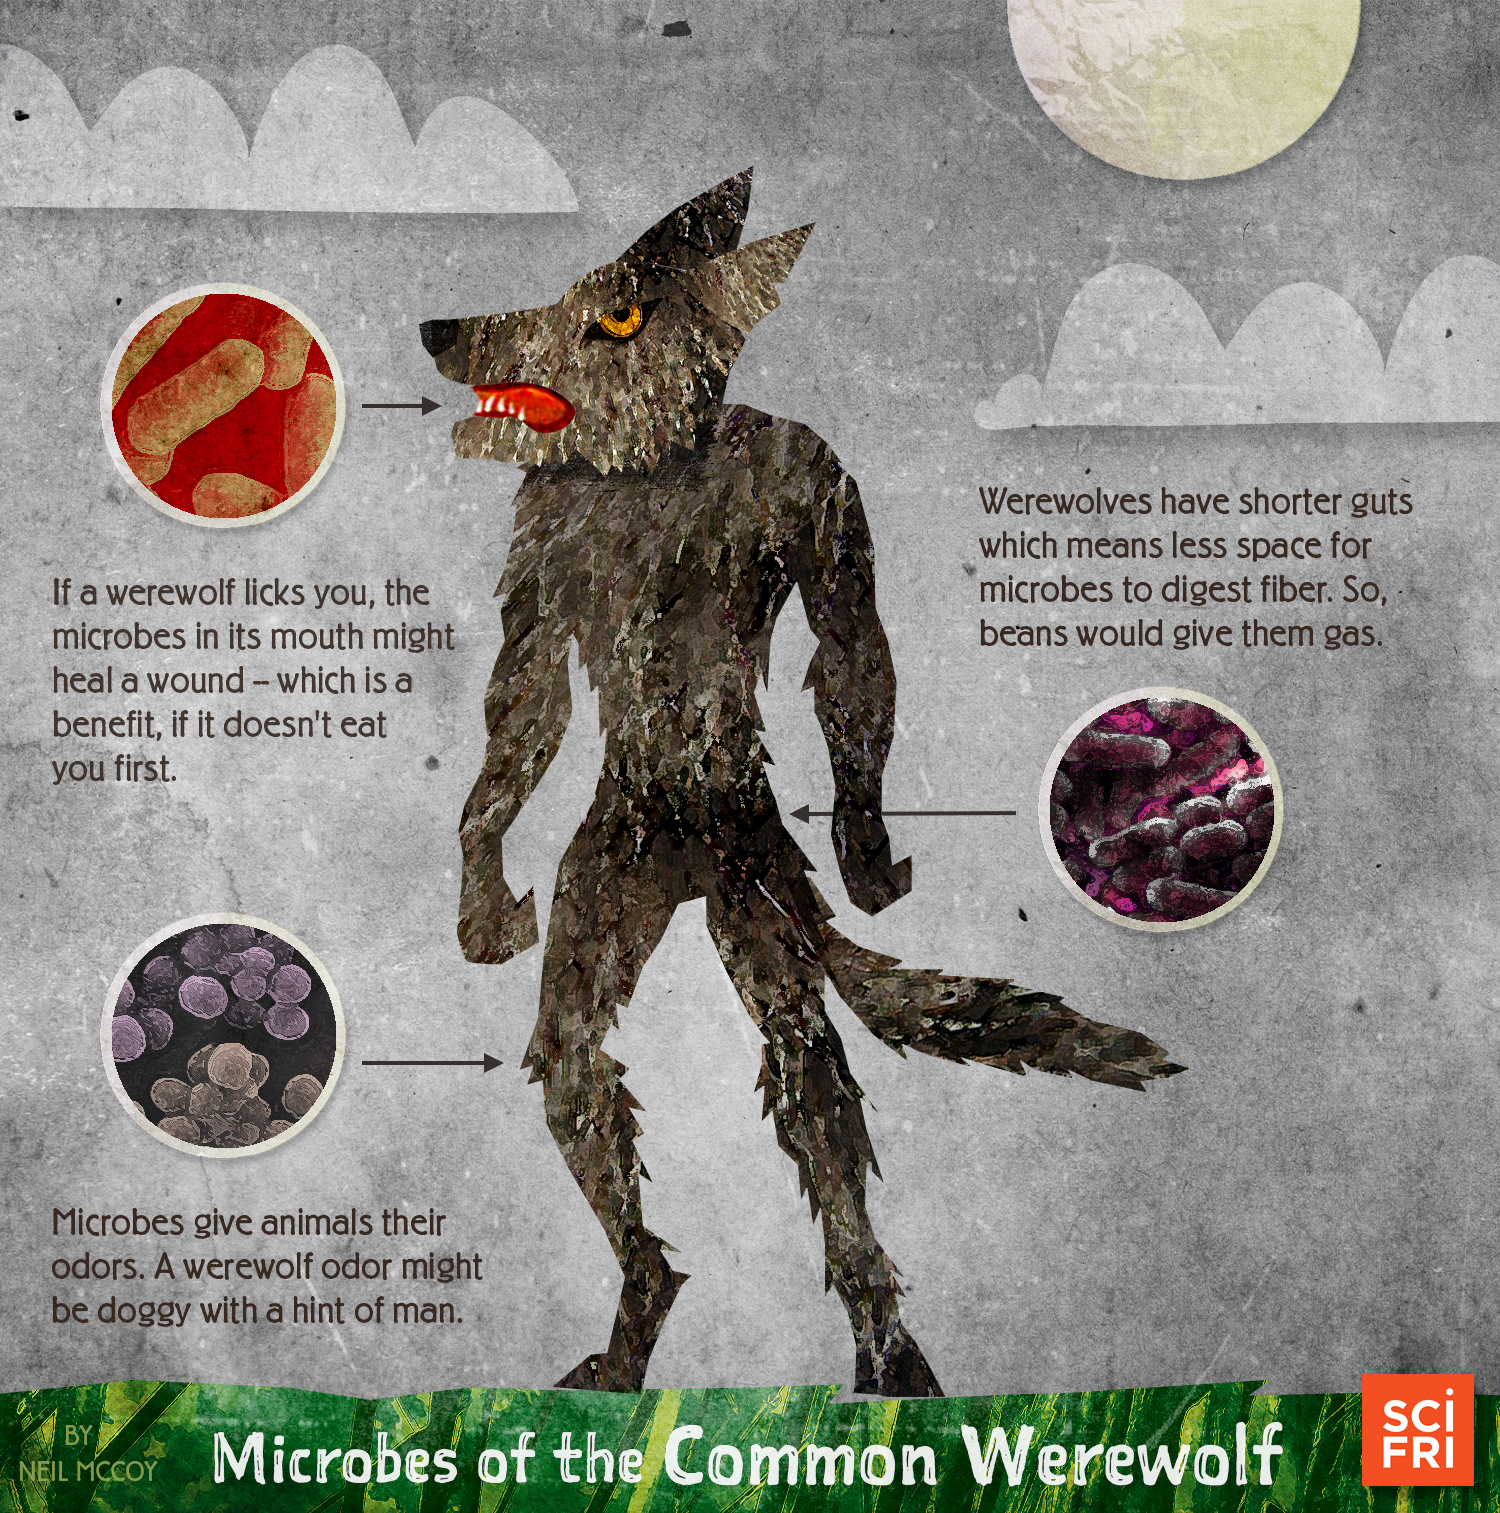 """Microbes of the Common Werewolf,"" by Neil McCoy, Science Communication and Design, Applied Ecology at North Carolina State University"